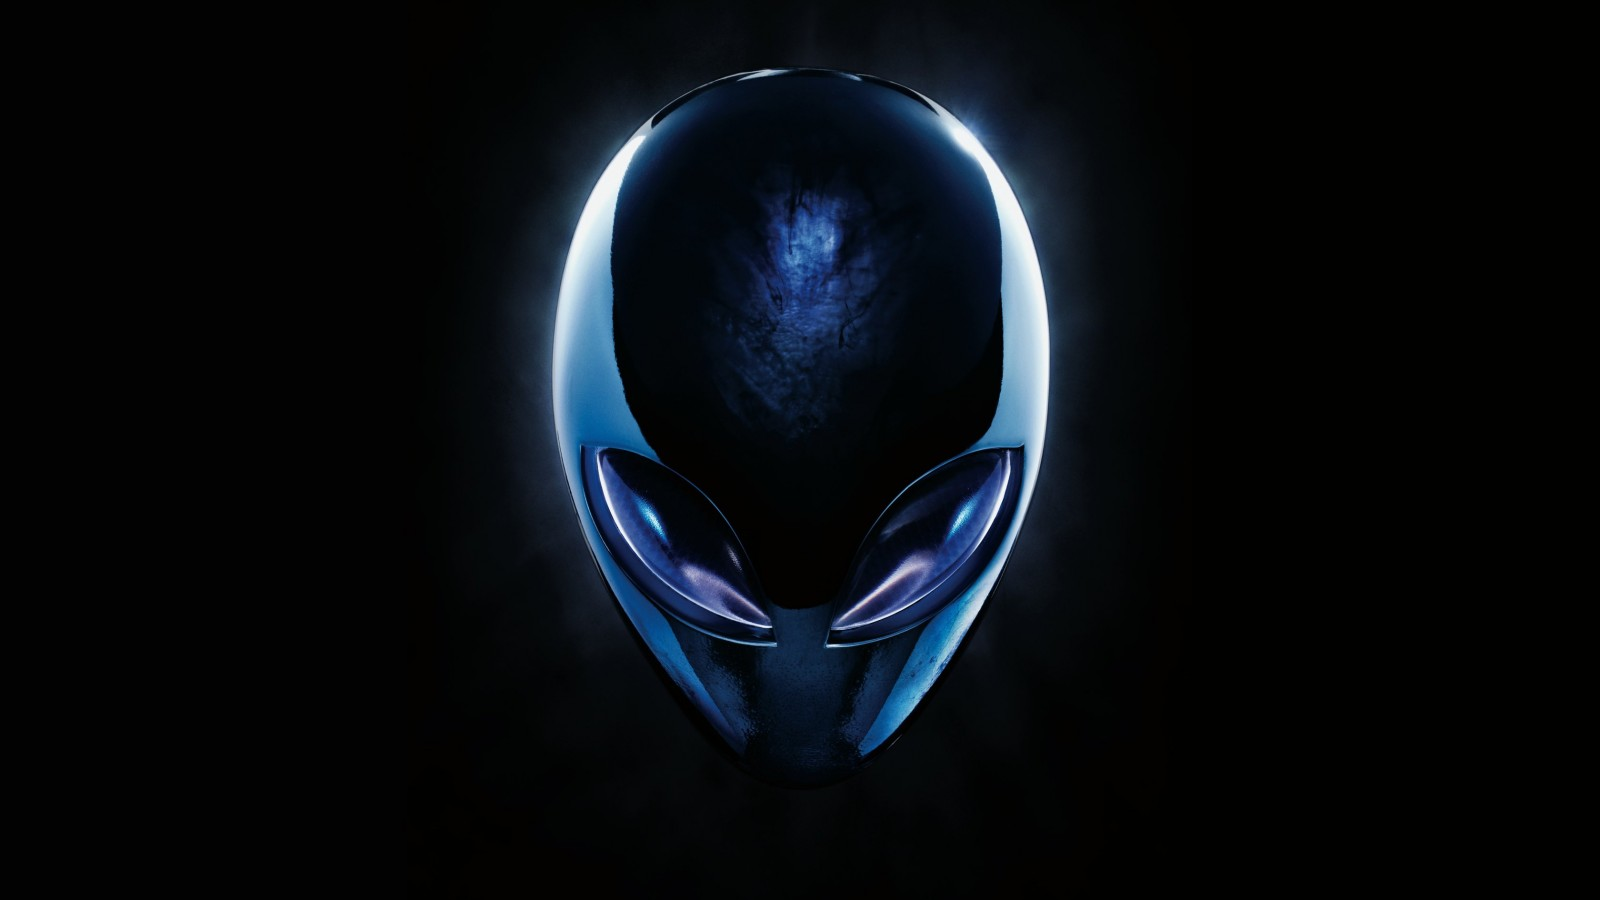 Alienware Blue Logo Wallpaper for Desktop 1600x900